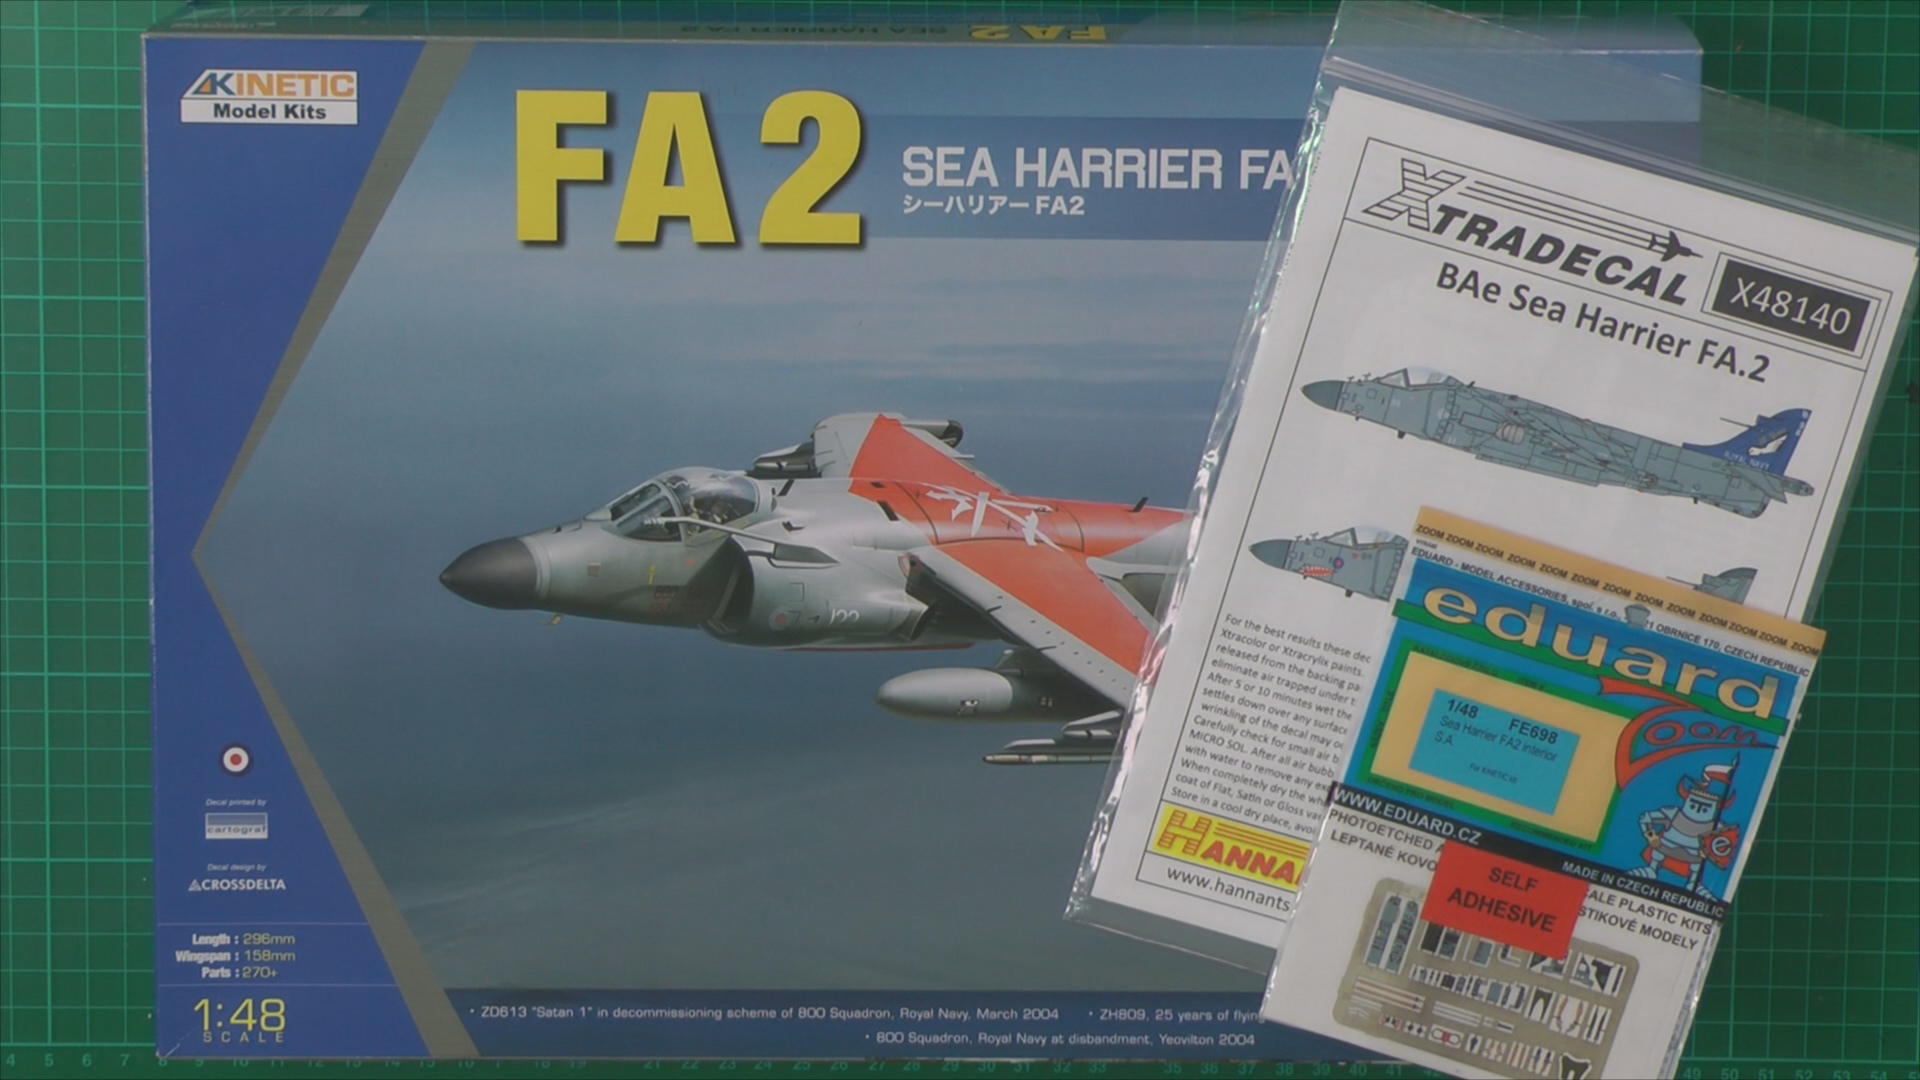 Sea Harrier FA2 Scale: 1/48   Manufacture: Kinetic   Parts used: Eduard Colour Photo Etched copit set   Main paints used: Tamiya and Gunze